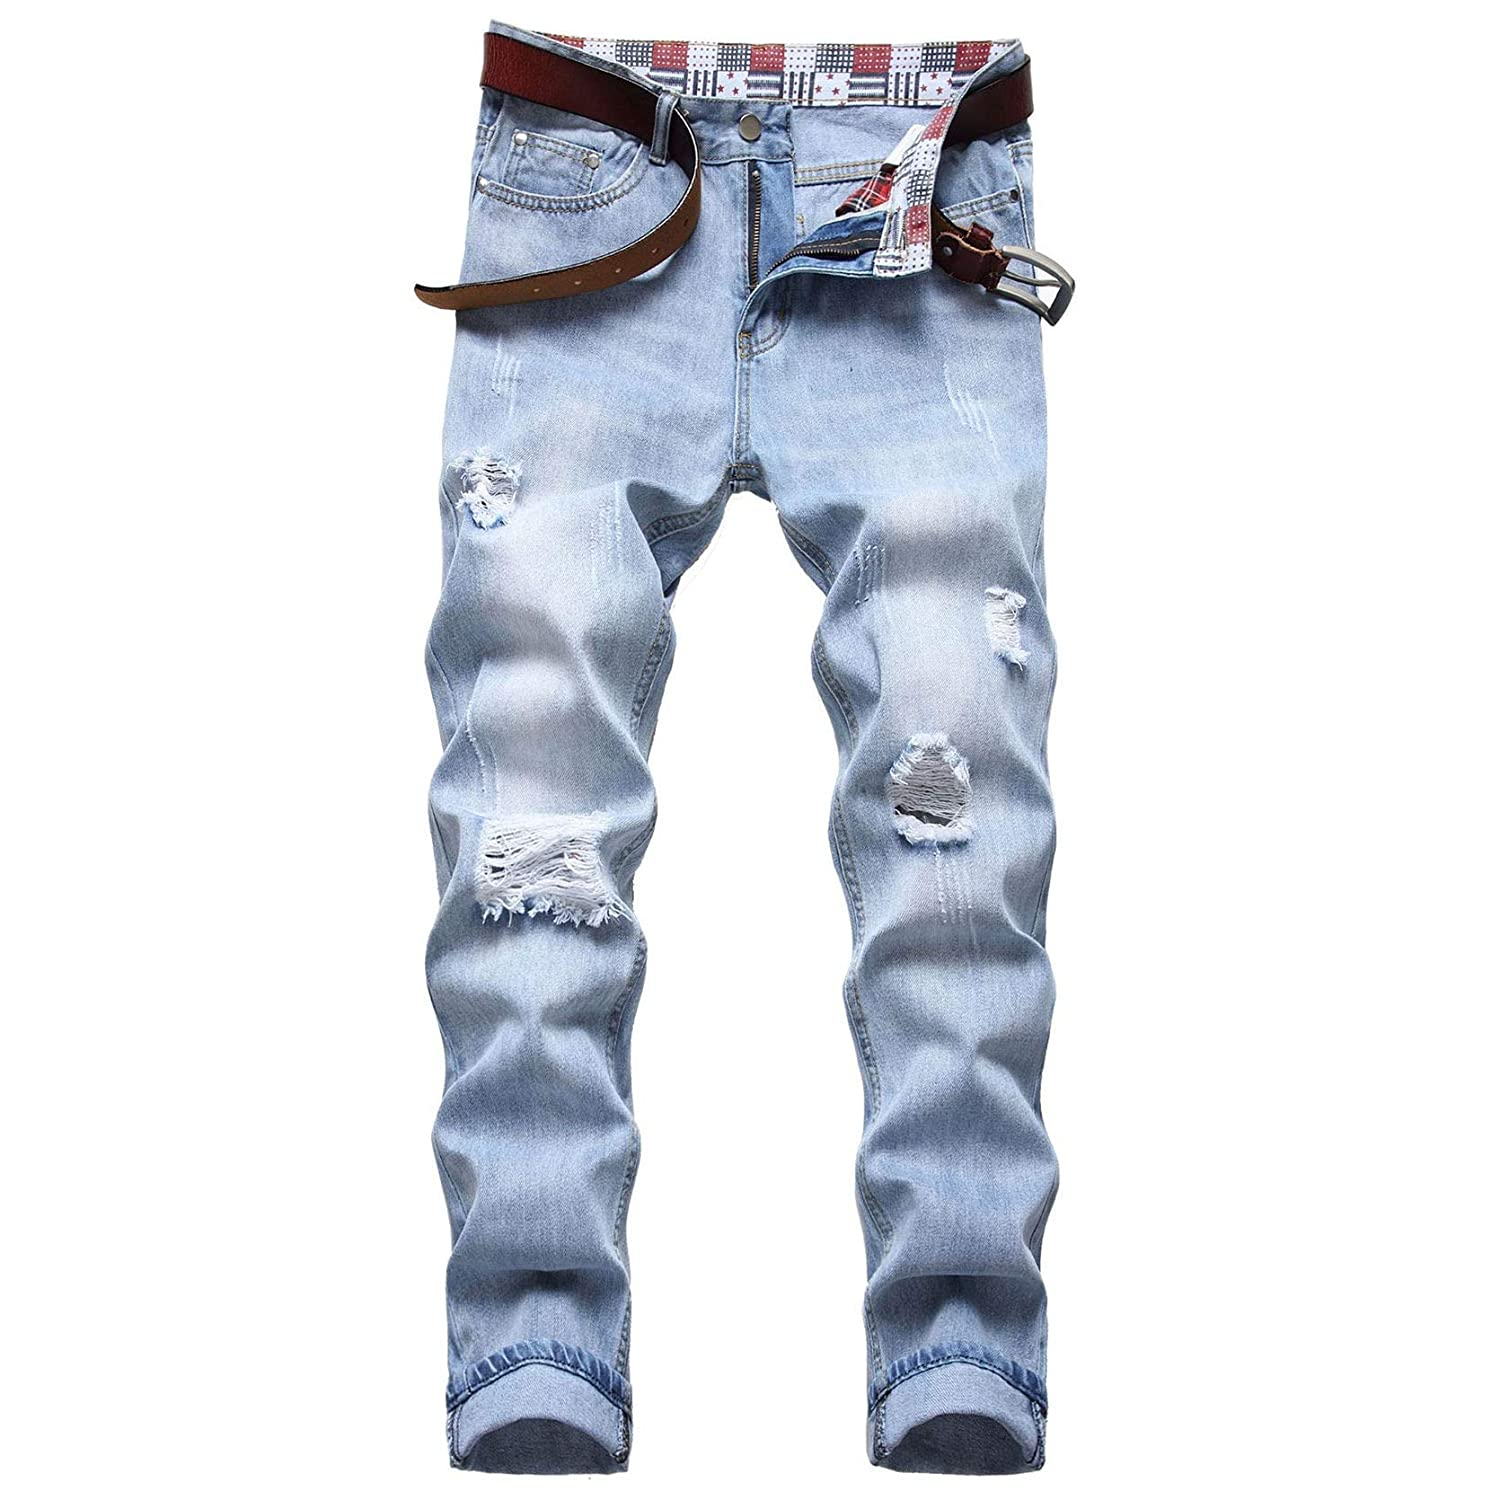 Men's Ripped Jeans Fashion Max 88% 40% OFF Cheap Sale OFF Regular Denim Destroyed Pa Distressed